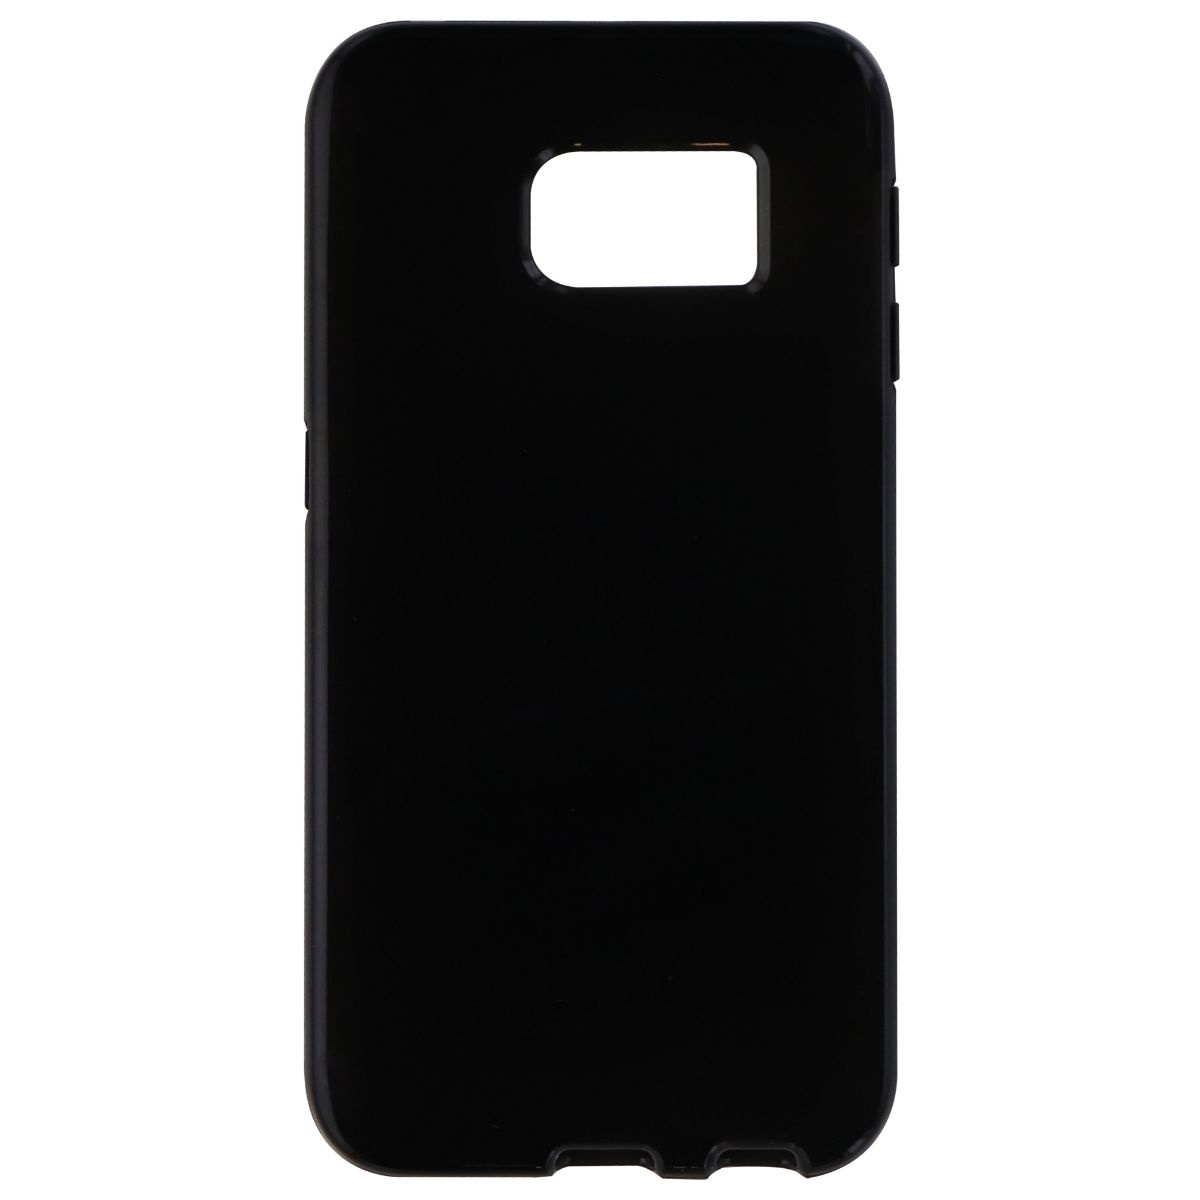 Verizon High Gloss Silicone Cover for Samsung Galaxy S6 Edge - Black